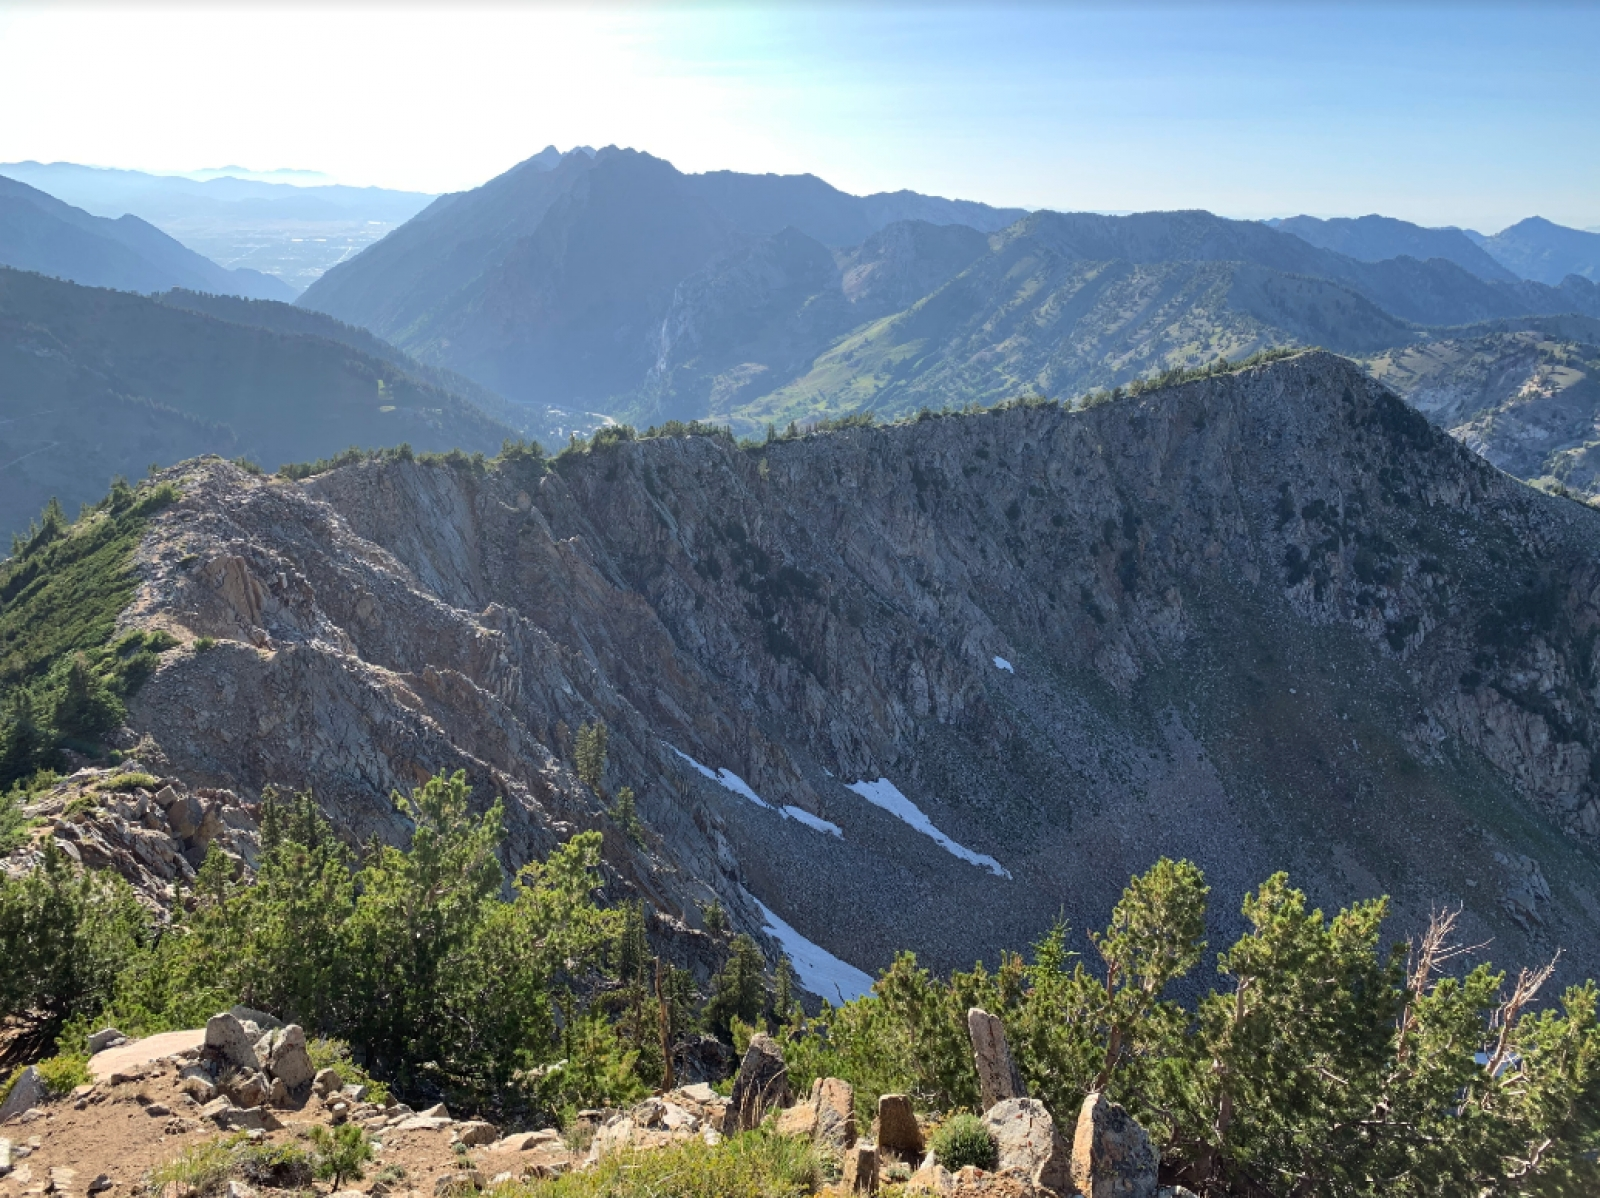 Save Our Canyons Comments on UDOT's Little Cottonwood Canyons Environmental Impact Study